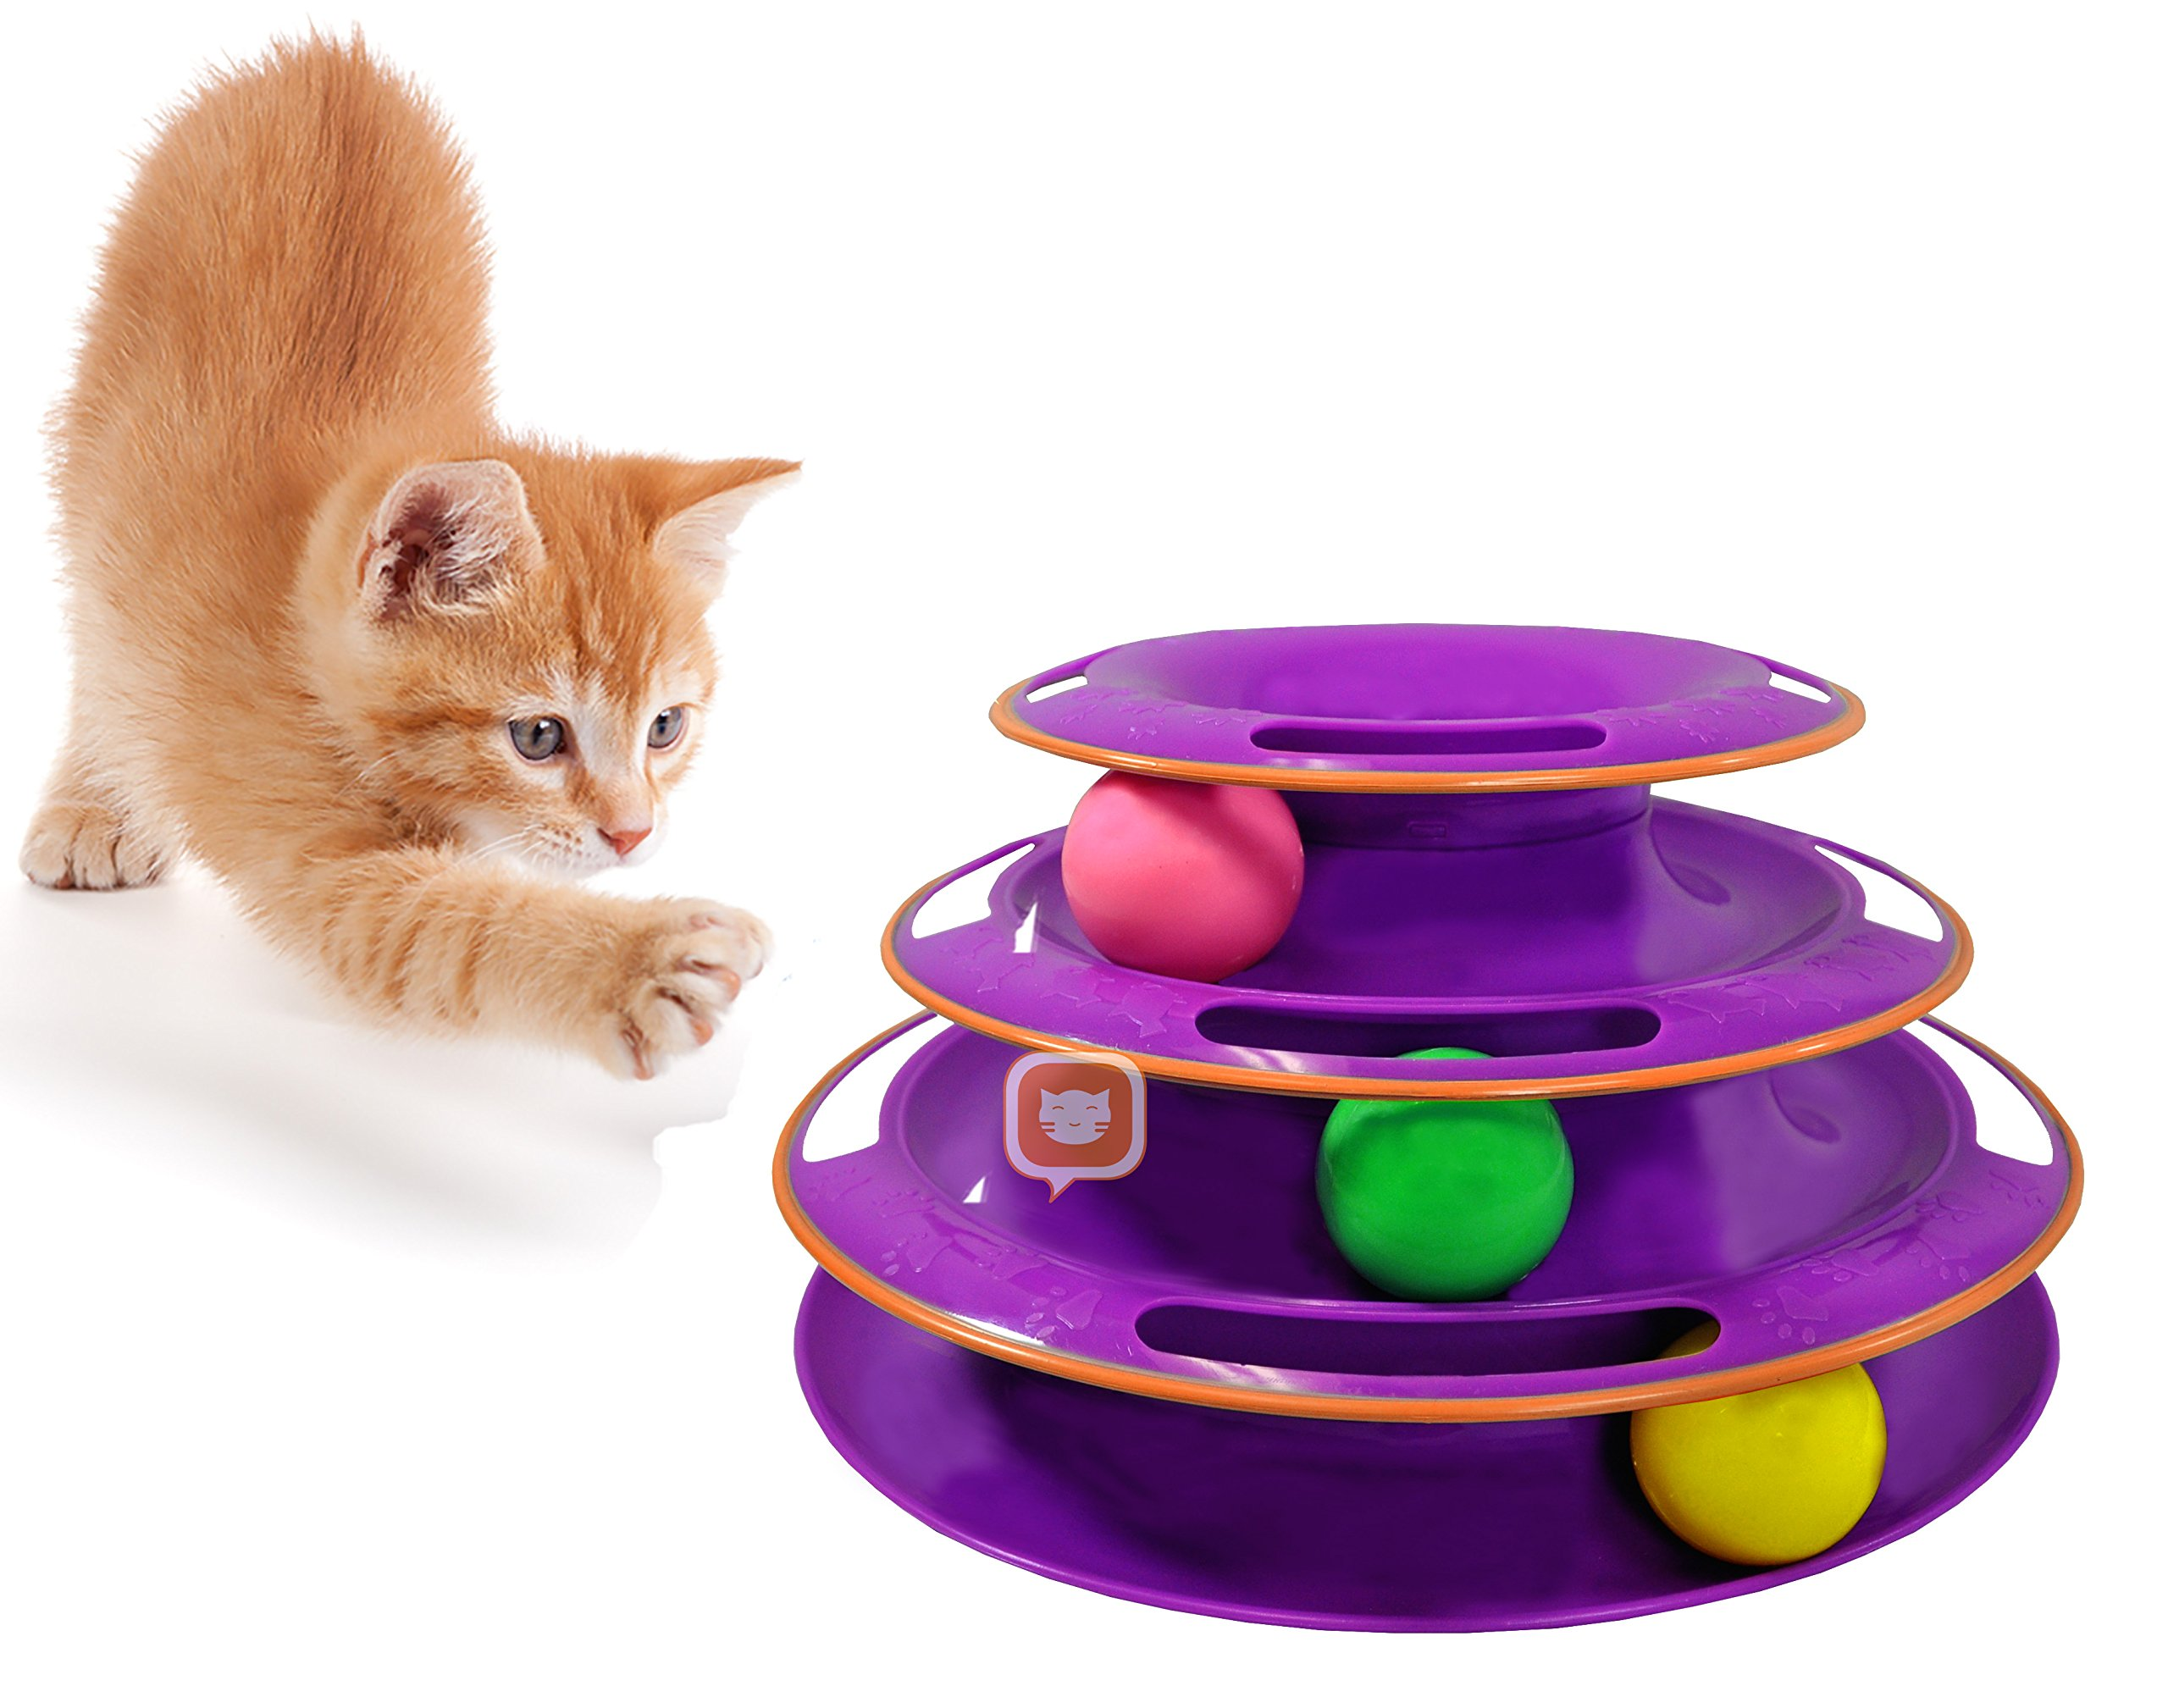 Purrfect Feline Titan's Tower - New Safer Bar Design, Interactive Cat Ball Toy, Exerciser Game, Teaser, Anti-Slip, Active Healthy Lifestyle, Suitable for Multiple Cats (Purple)